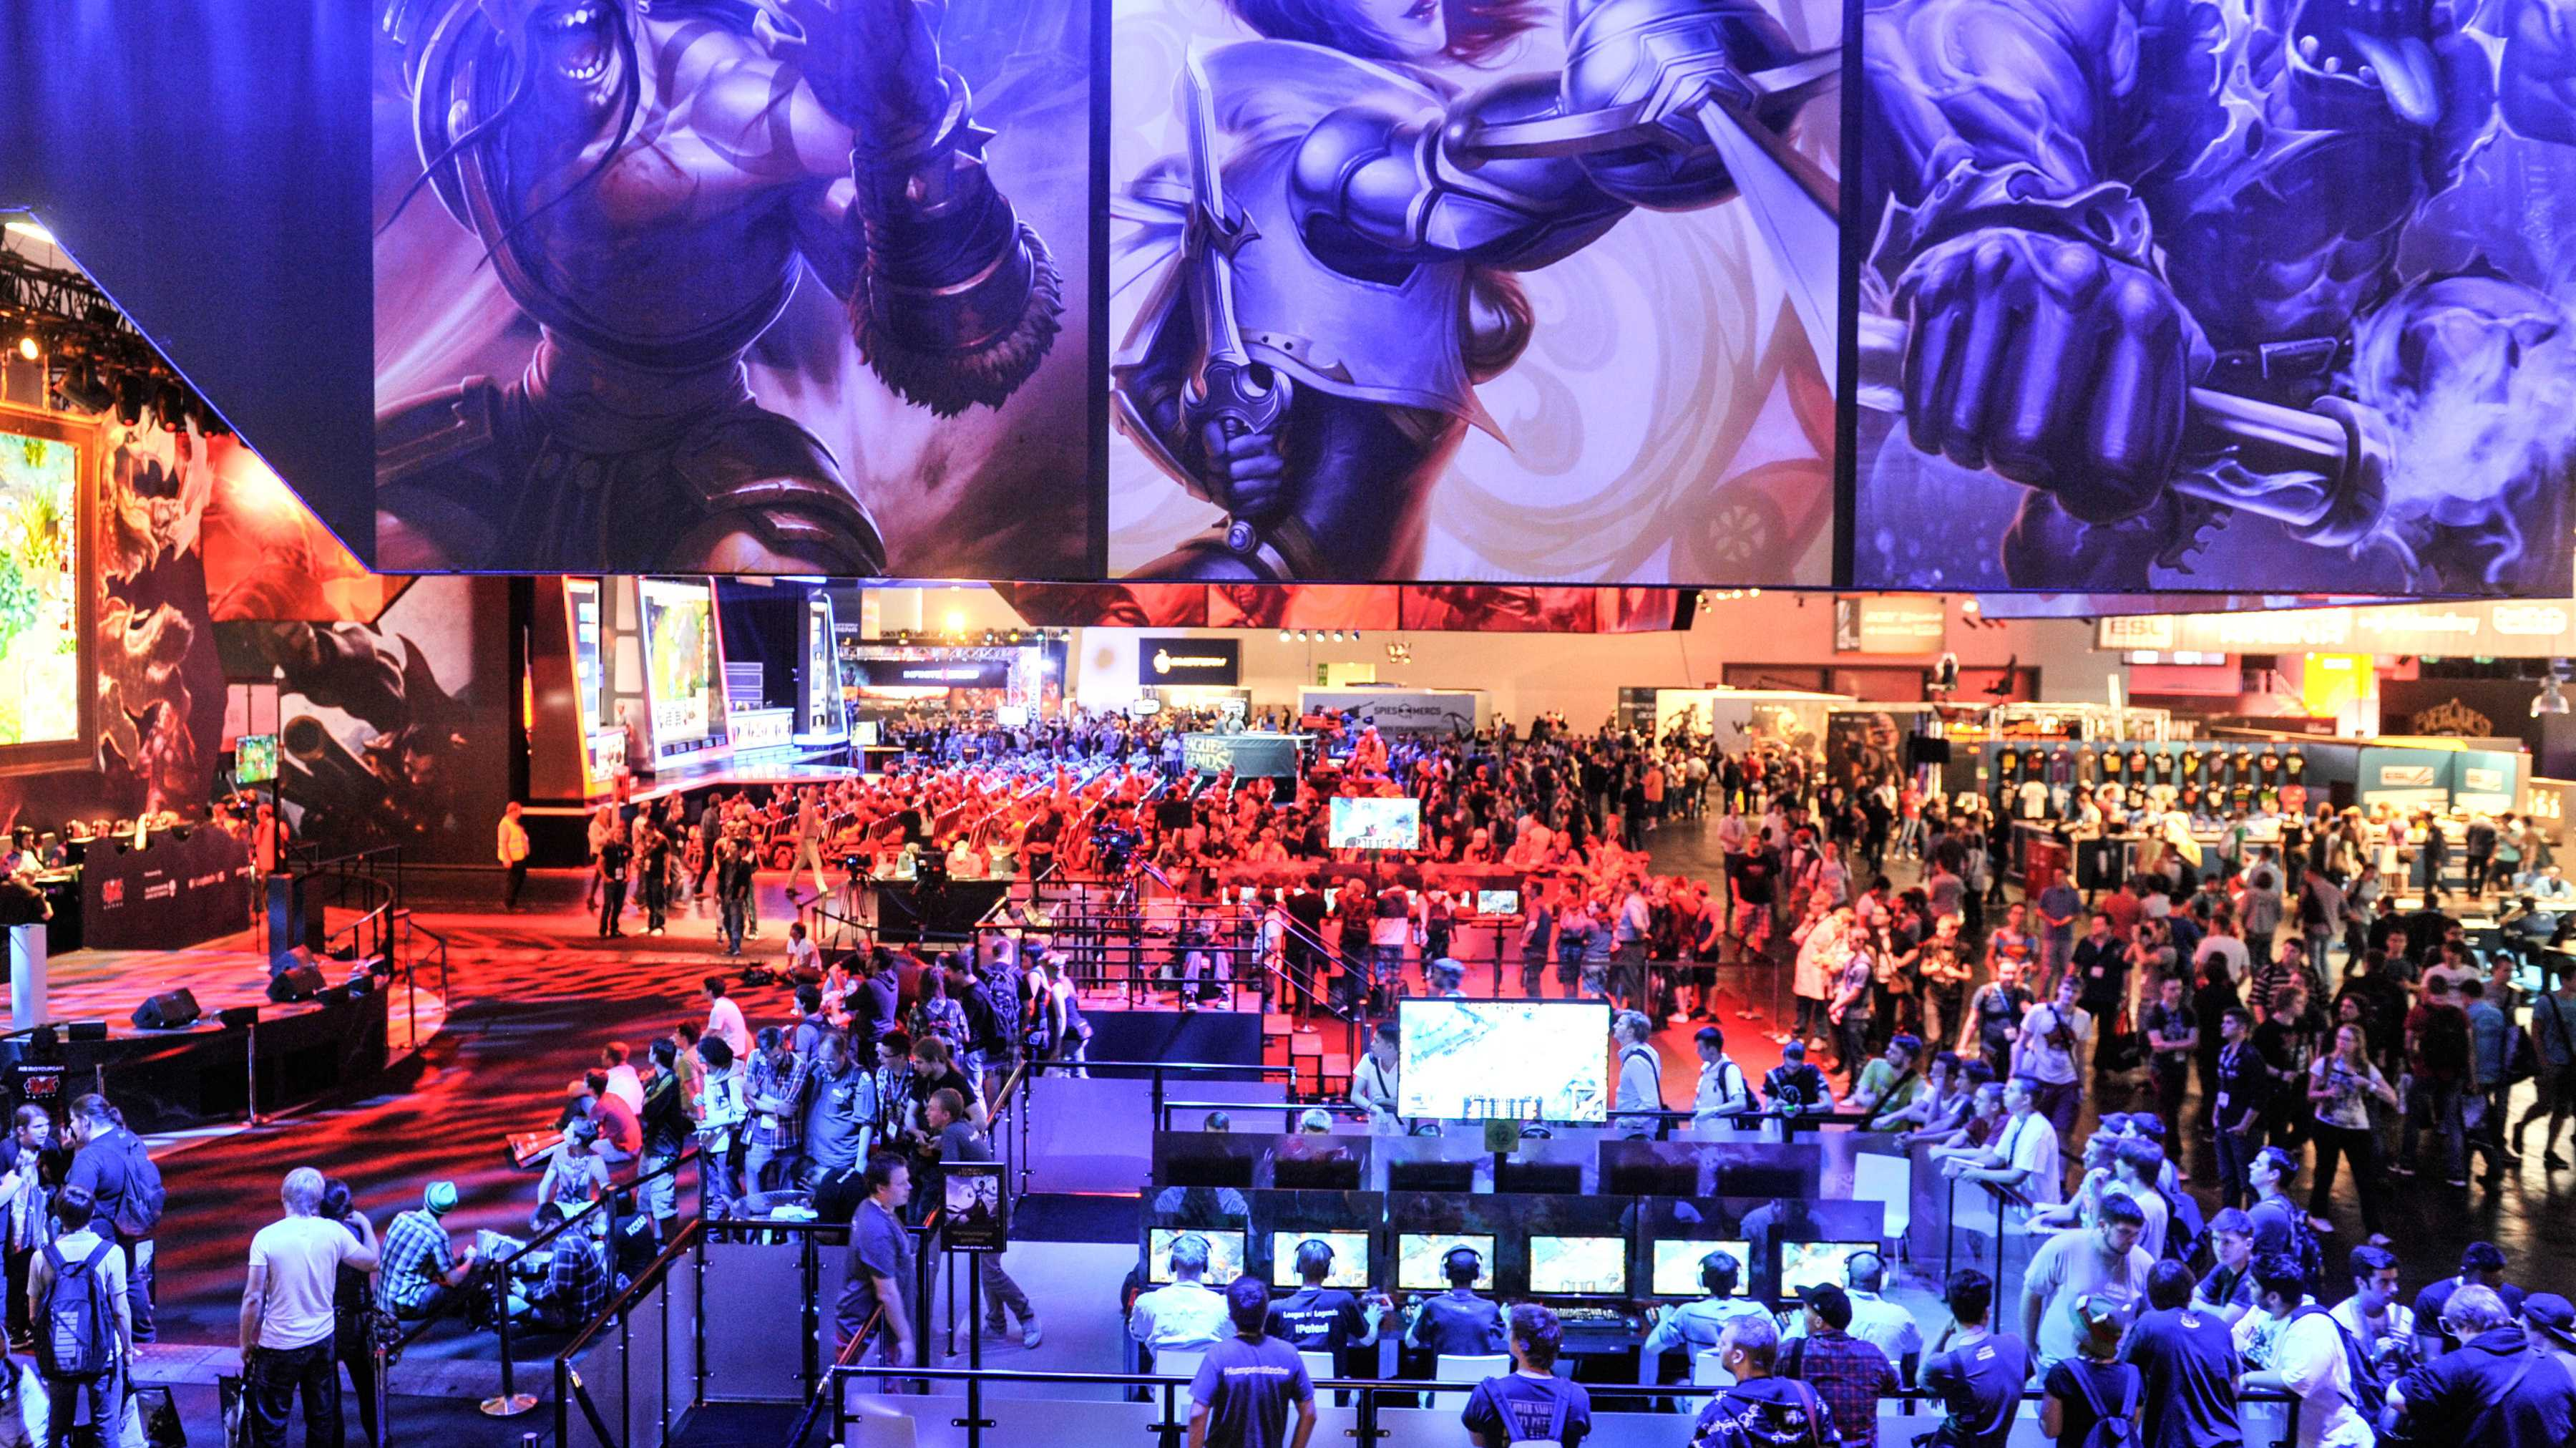 Impressionen von der GamesCOM: League of Legends